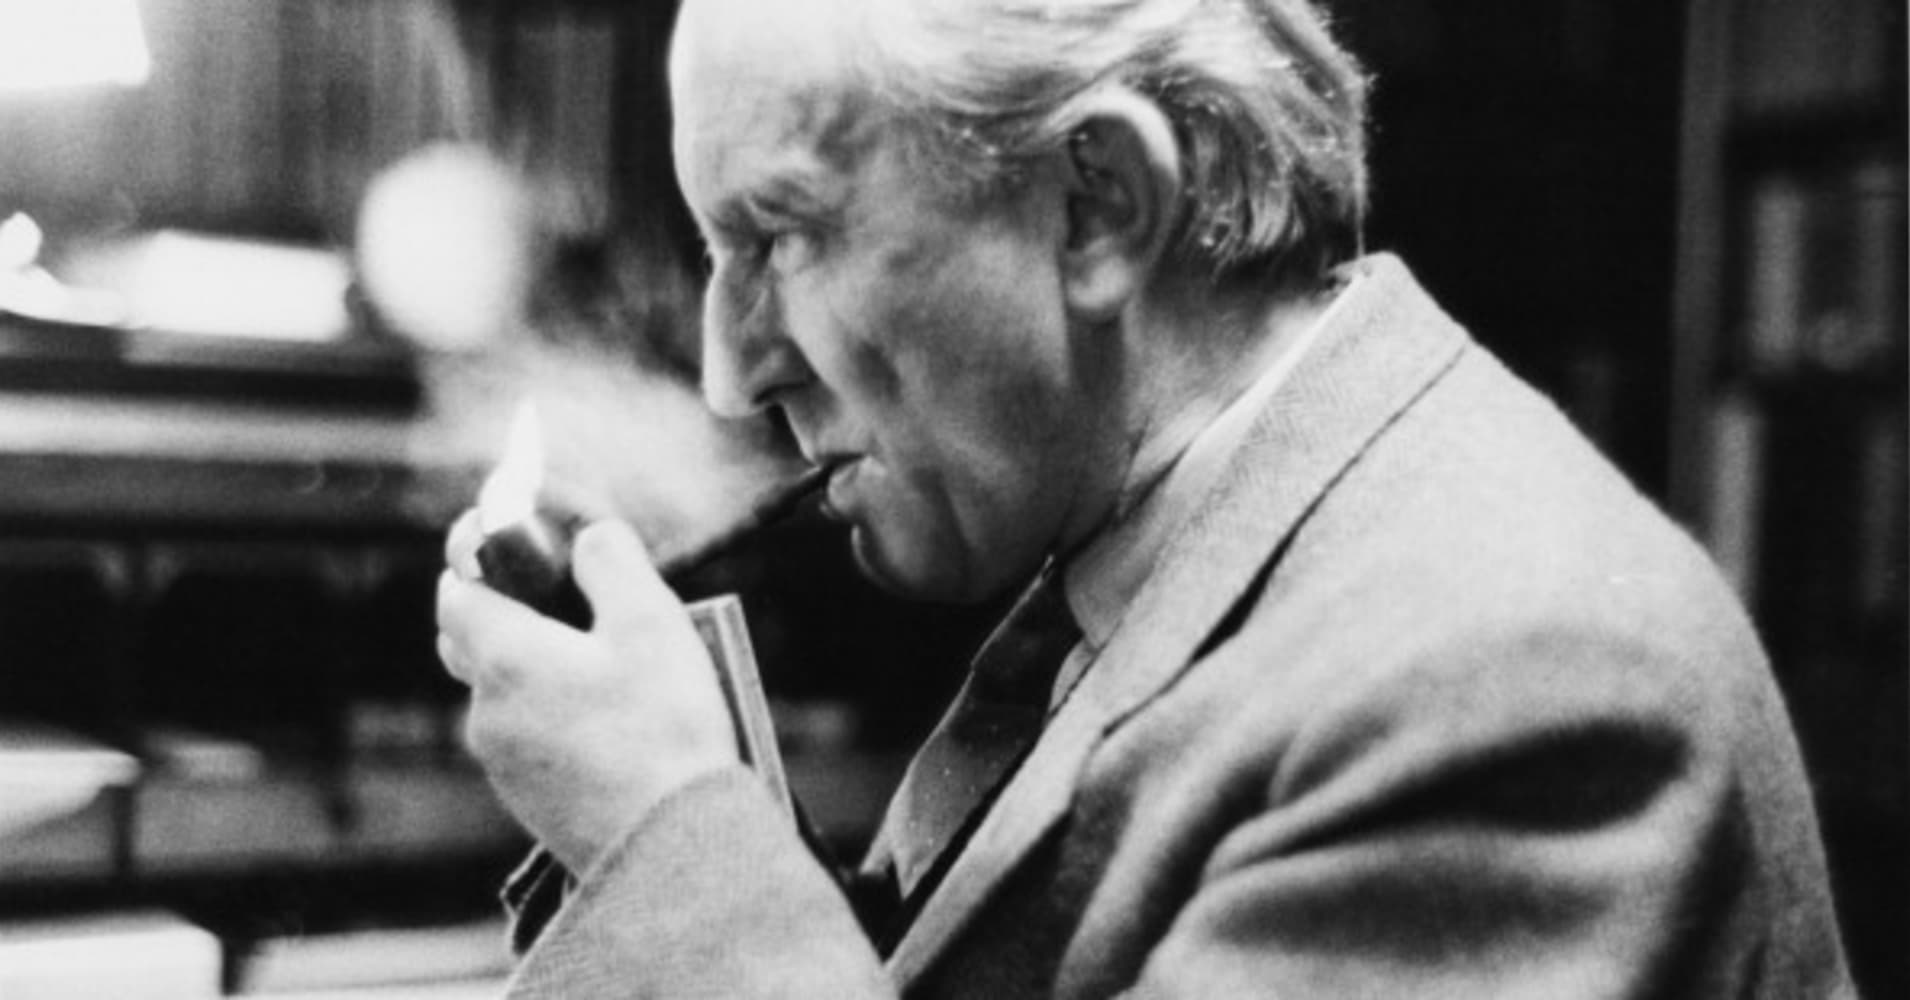 'New' JRR Tolkien novel hailed as the 'Holy Grail' of his works is set to be published this year